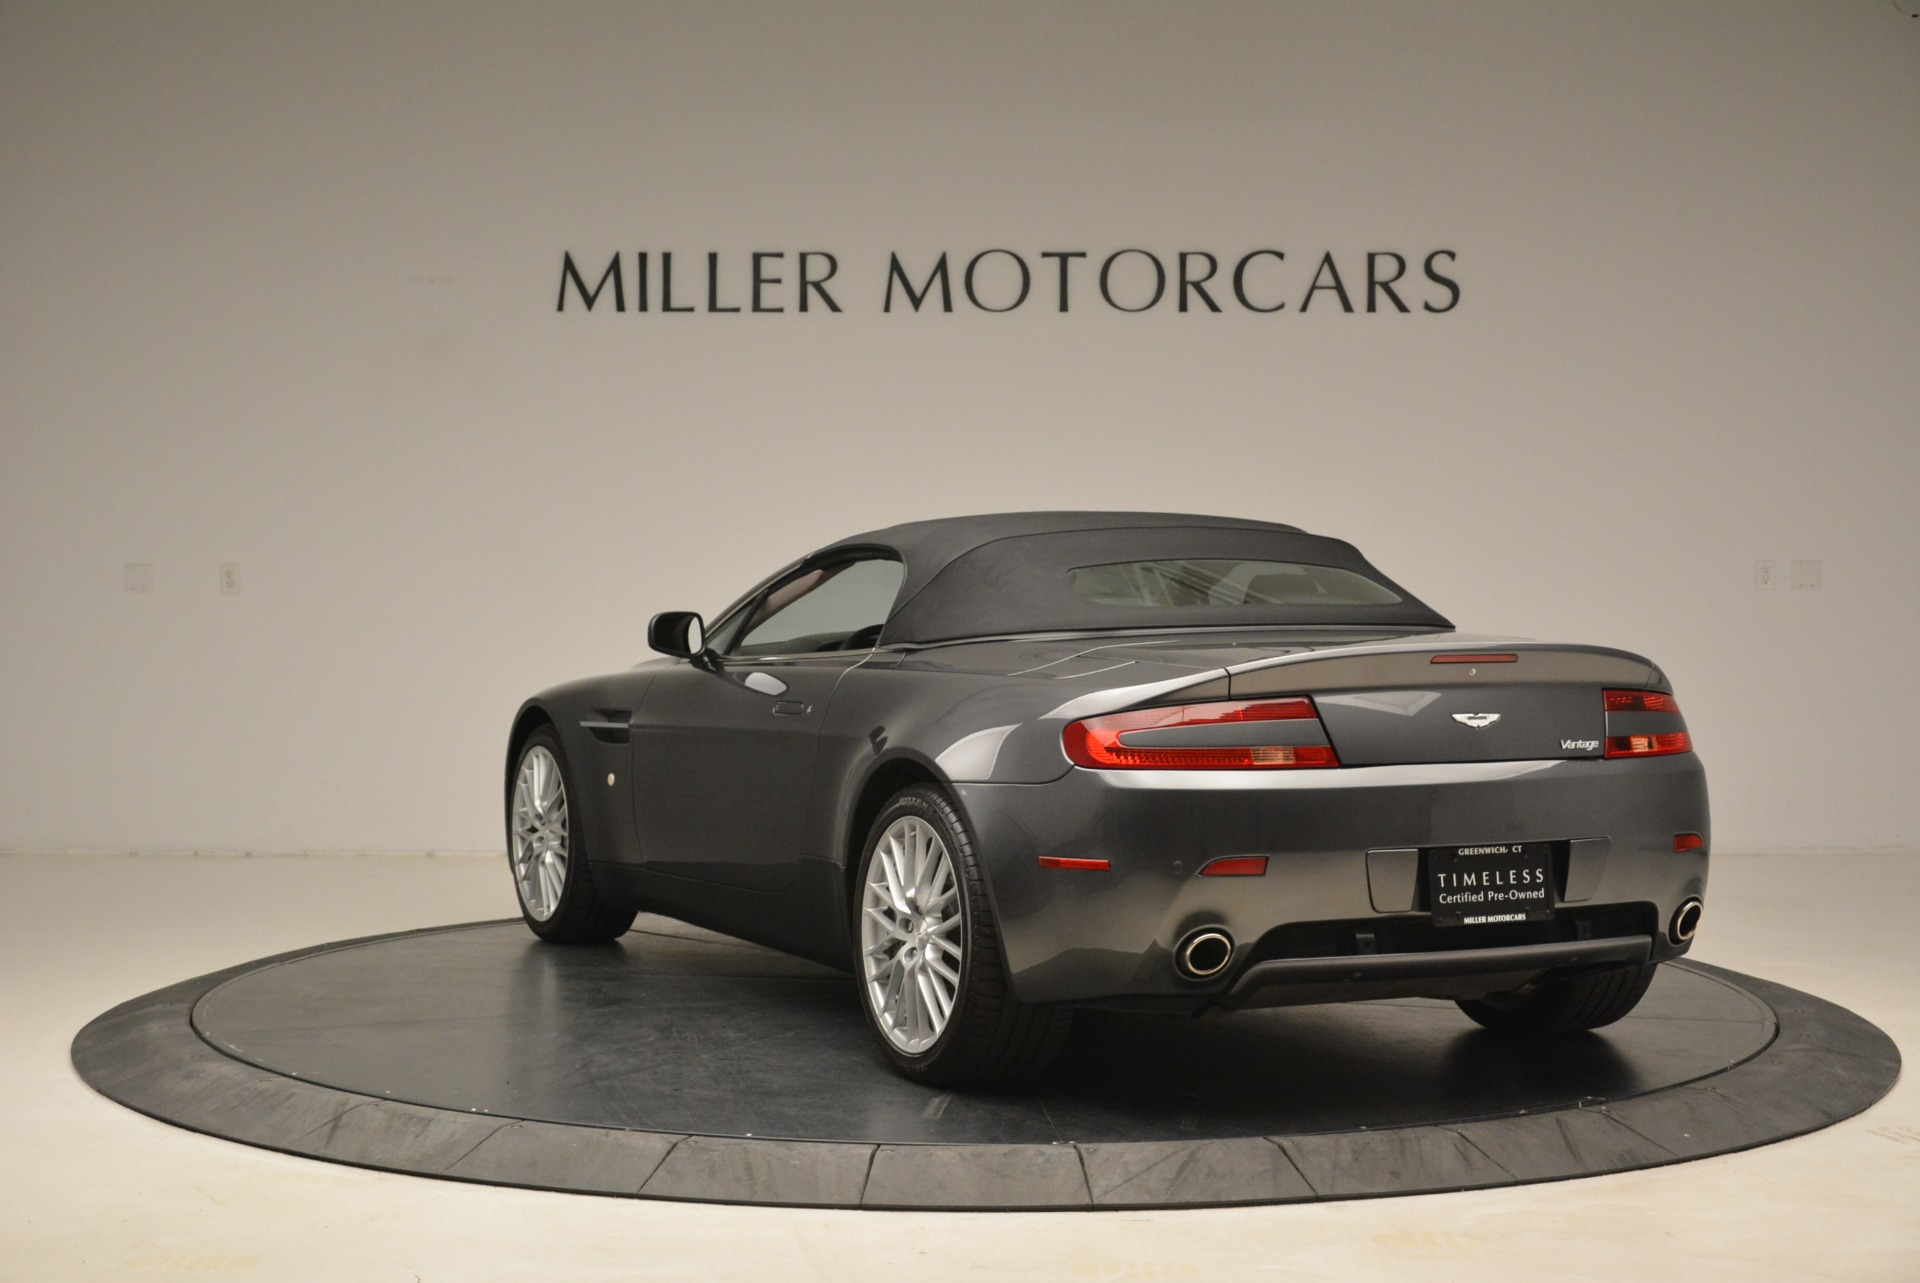 Used 2009 Aston Martin V8 Vantage Roadster For Sale In Greenwich, CT. Alfa Romeo of Greenwich, 7333 2123_p17